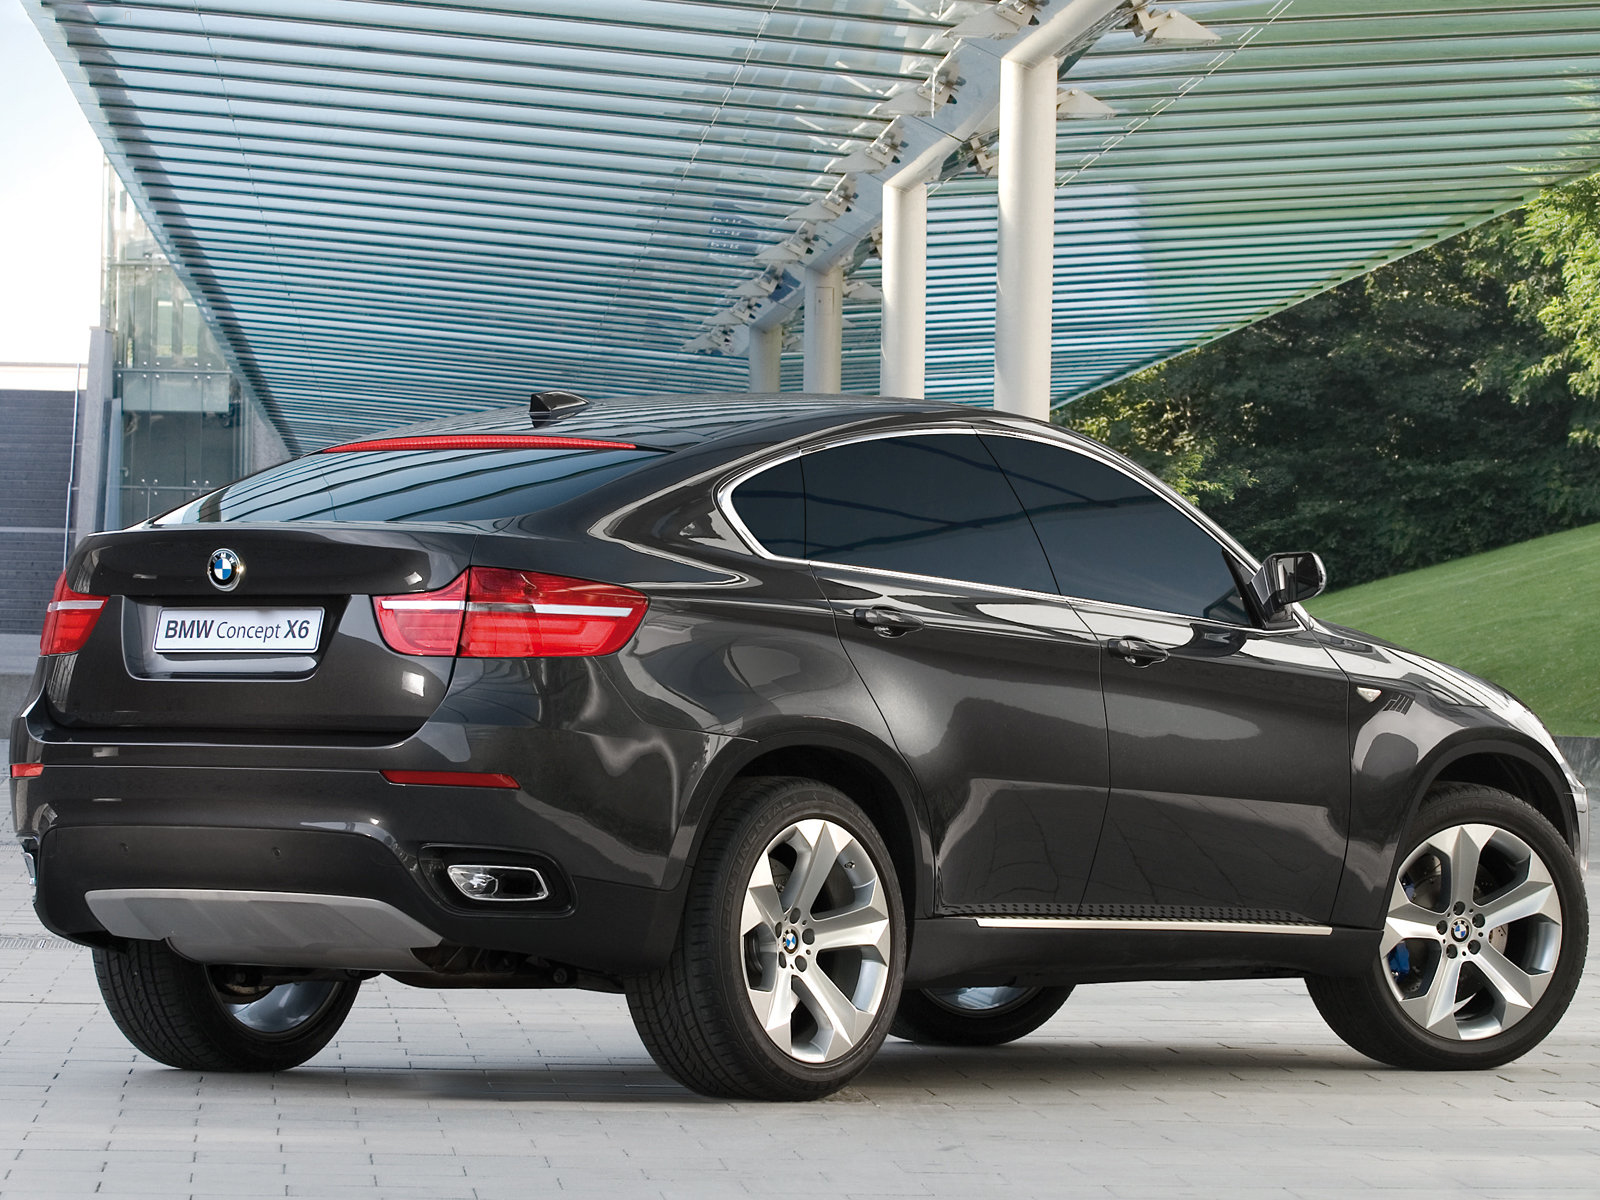 2007 bmw x6 concept rear view